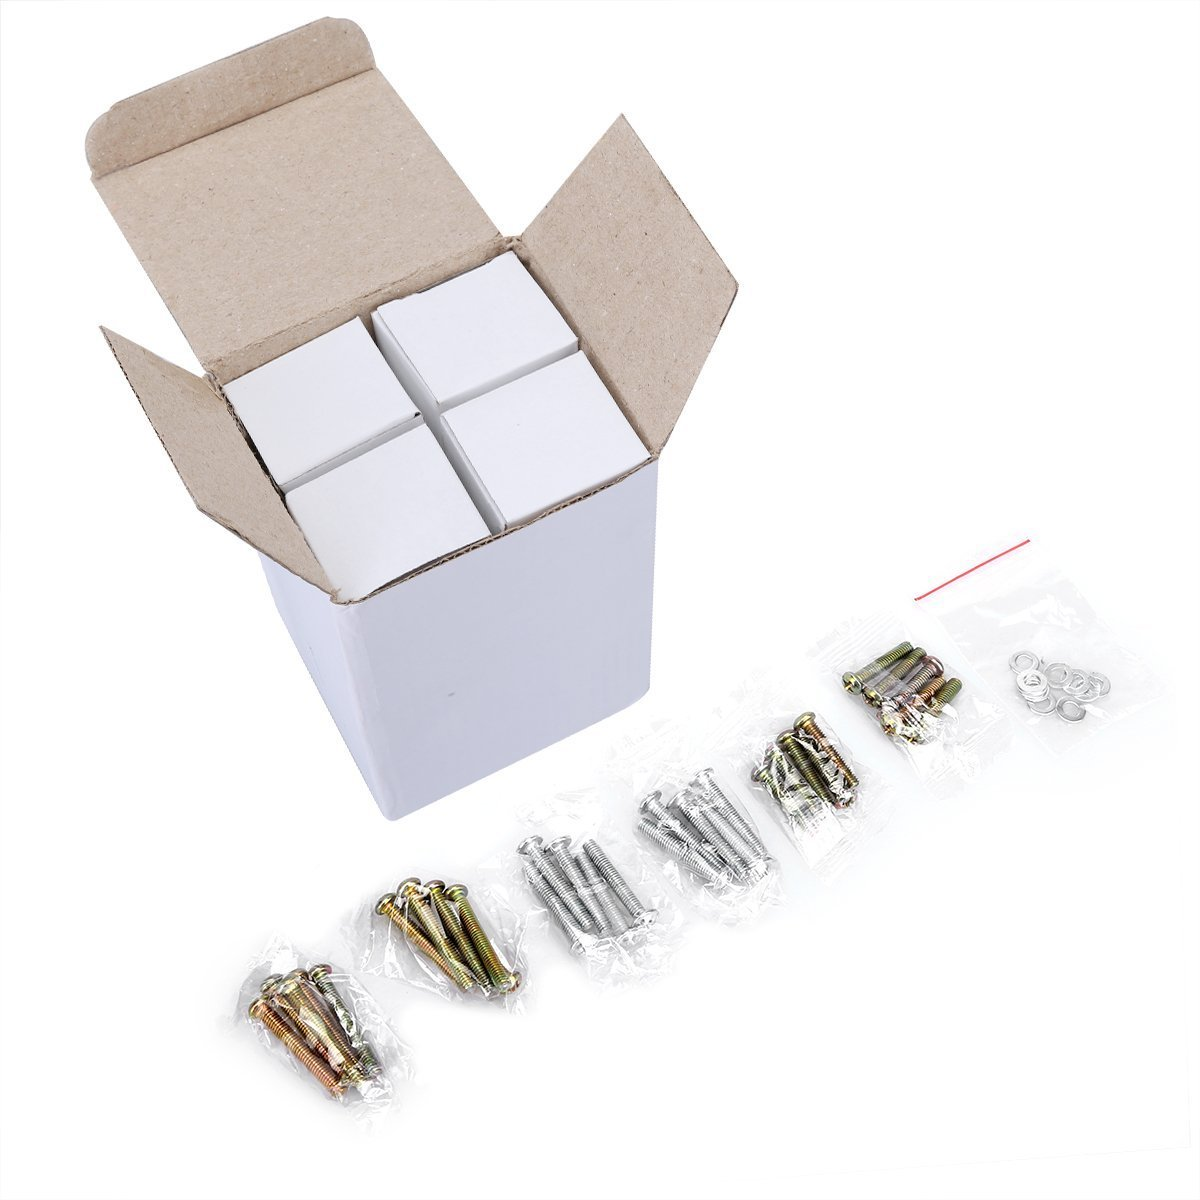 MELODIE DIRECT 10PCS 40MM Diamond Crystal Glass Cabinet Knobs Cupboard Drawer Pull Handle,3 Size Screws by MELODIE DIRECT (Image #7)